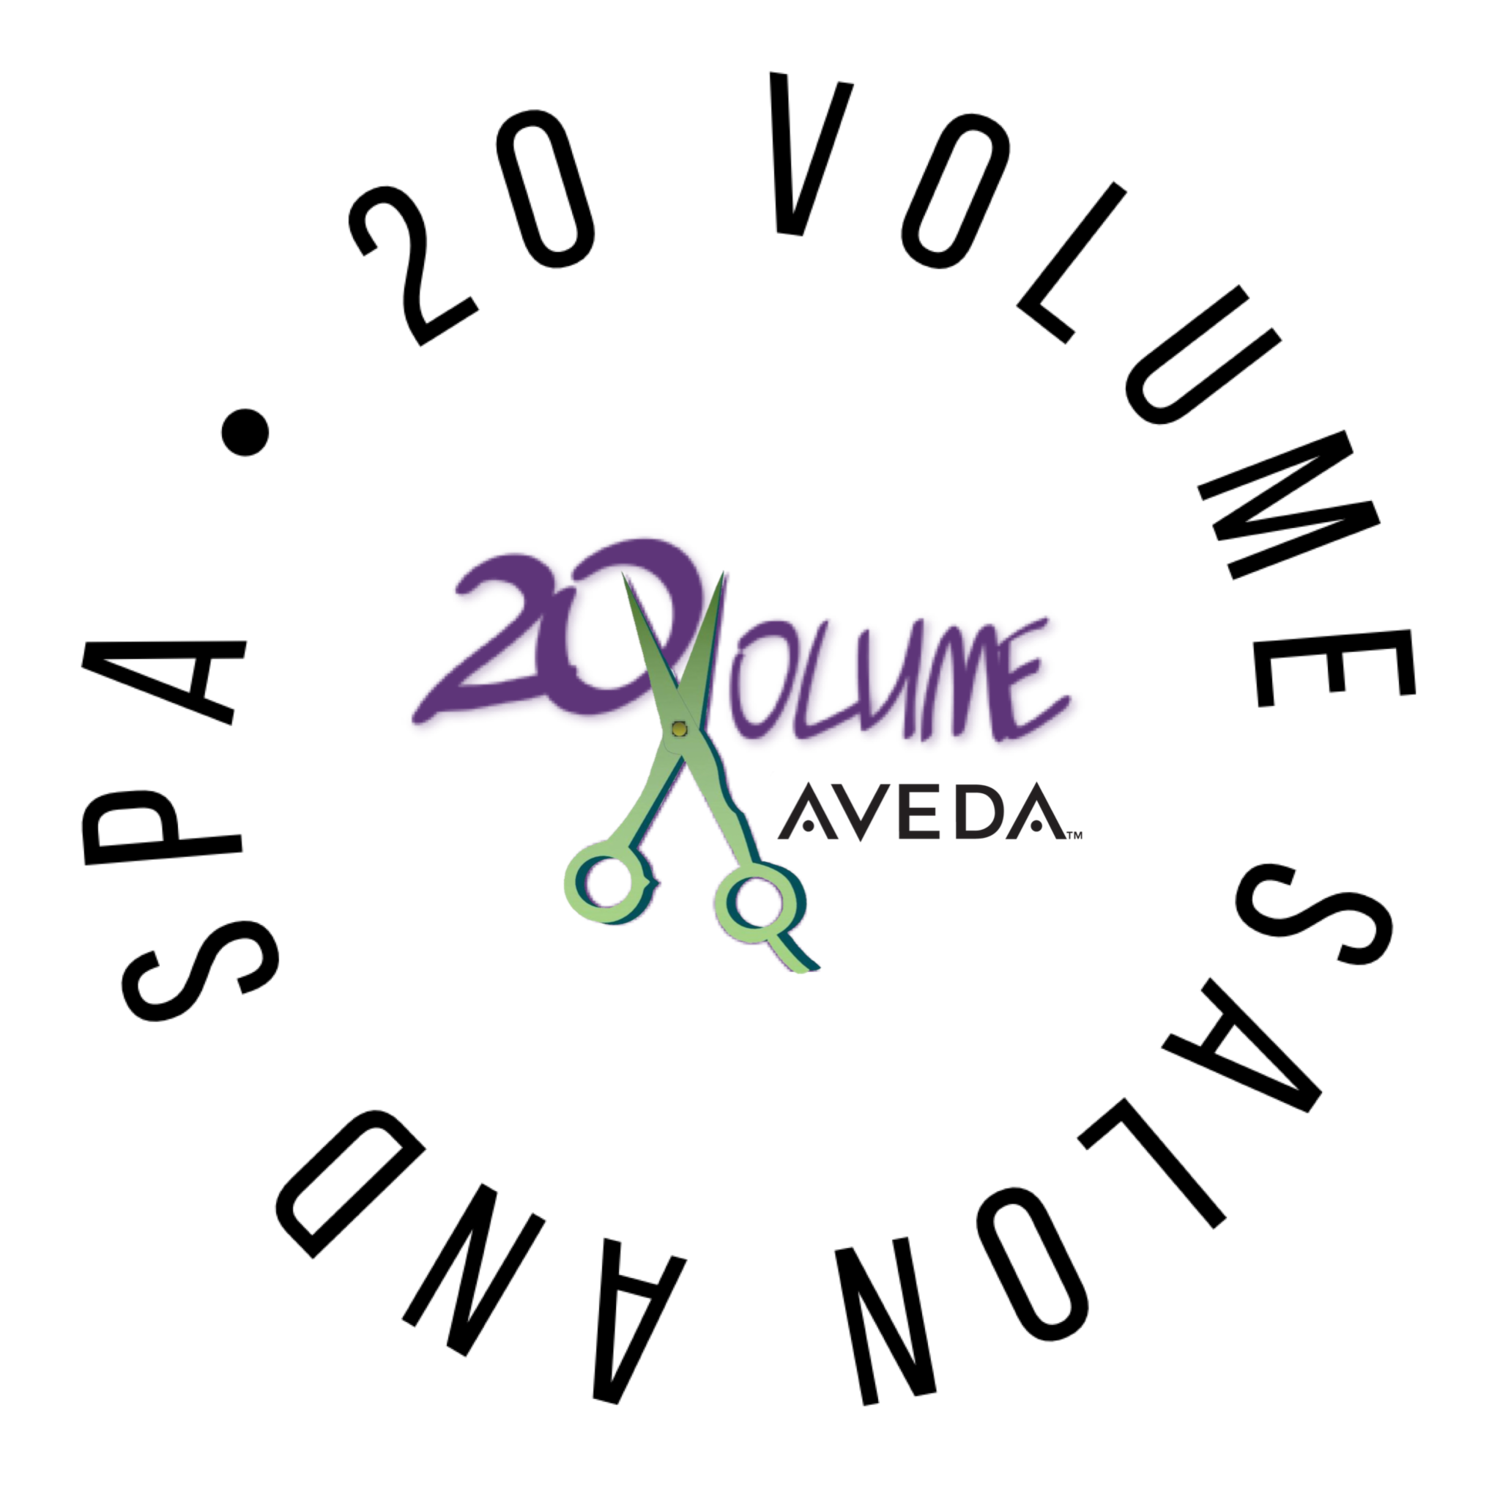 20 Volume Salon & Spa | Aveda Lifestyle  |   Locations in Gilbert, Mesa, Ahwatukee, and Queen Creek, AZ